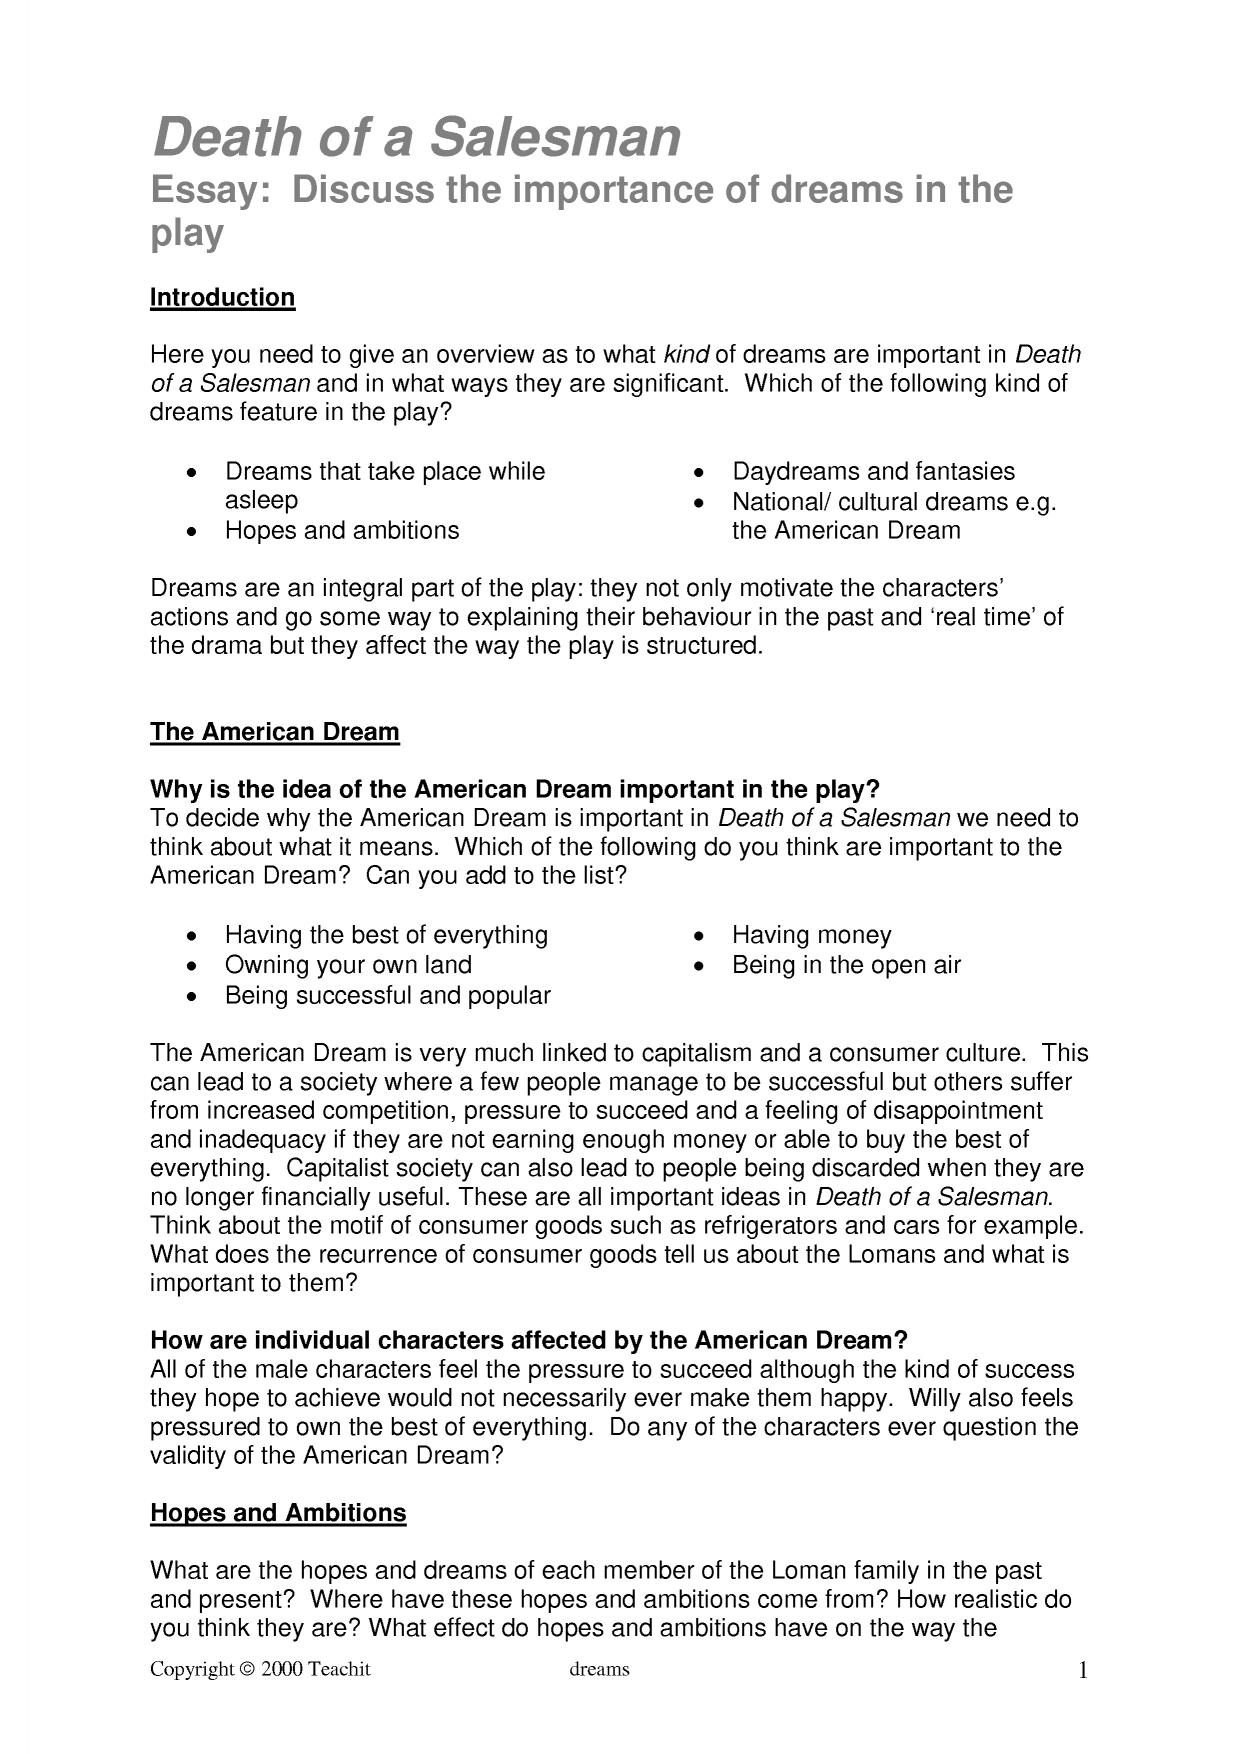 the american dream essays death of a sman ap essay american dream death of a sman ap essay